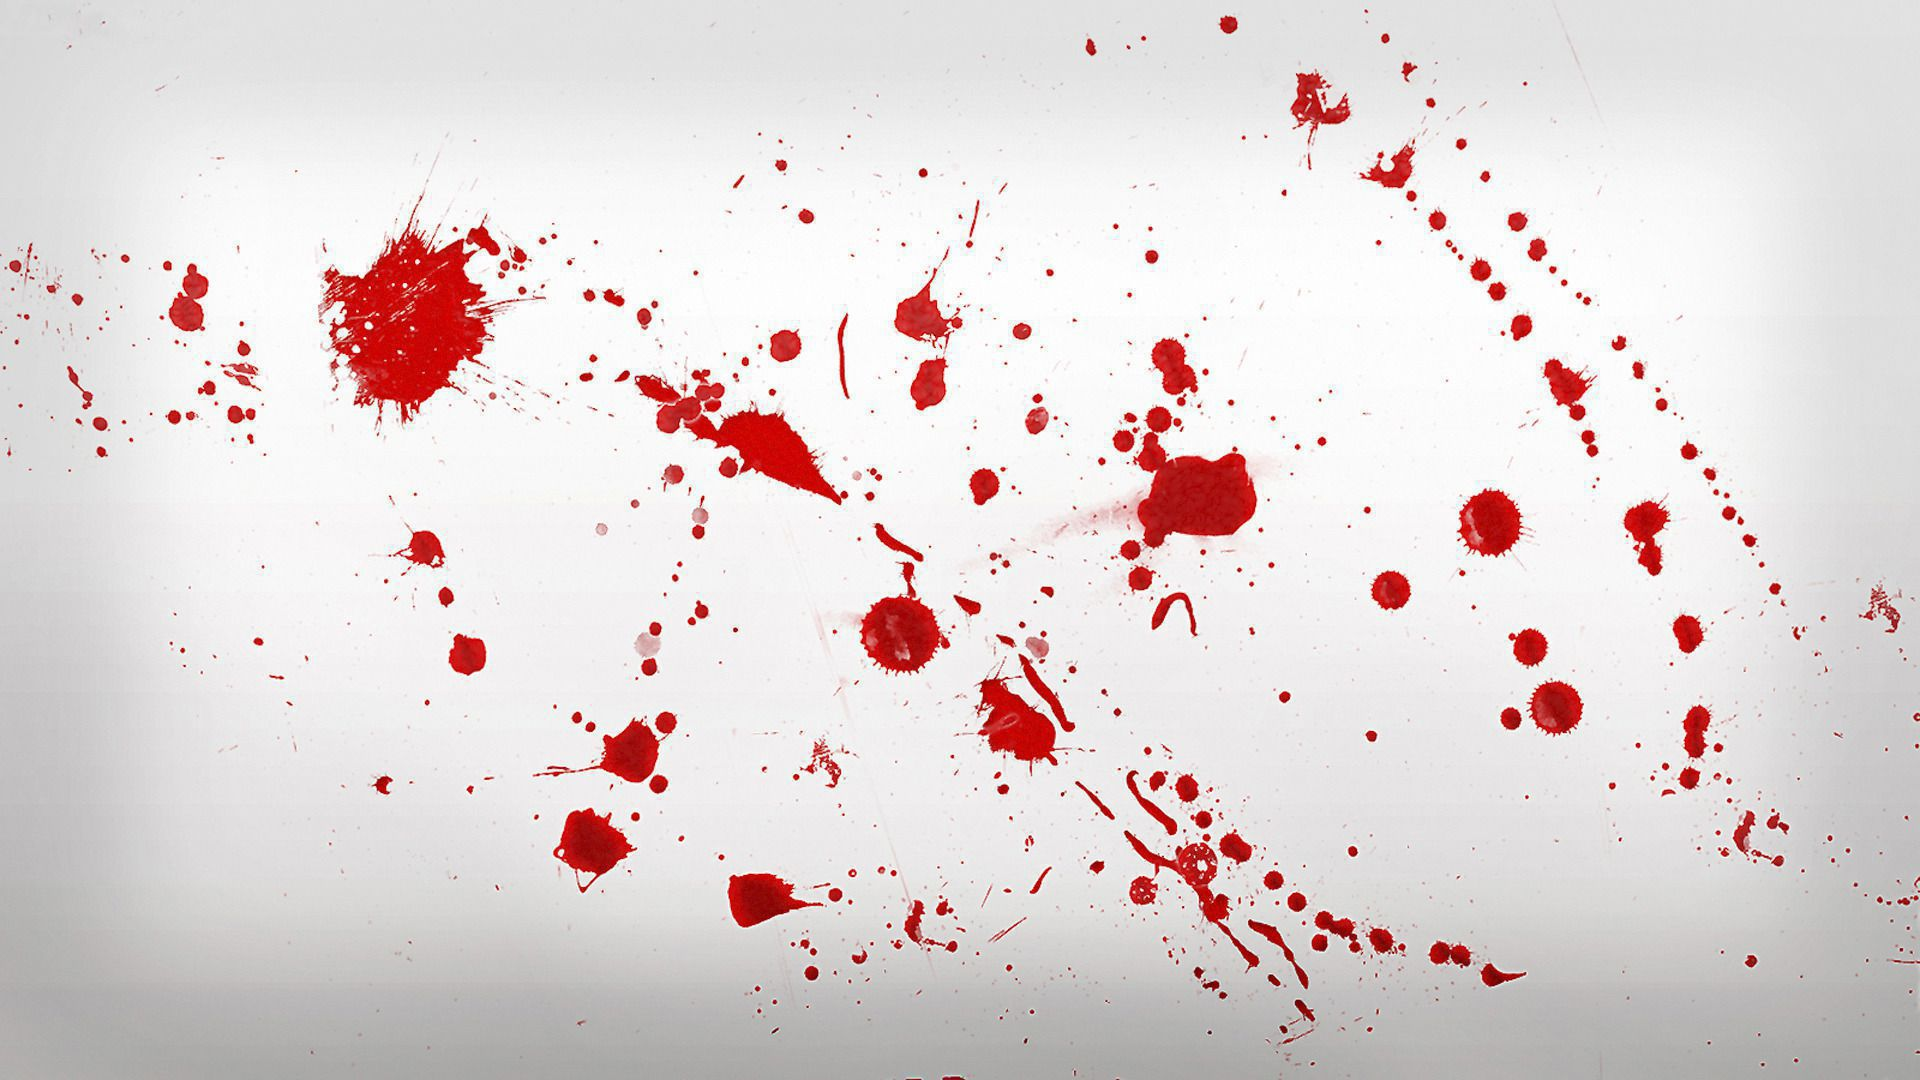 Blood Splatter Gallery